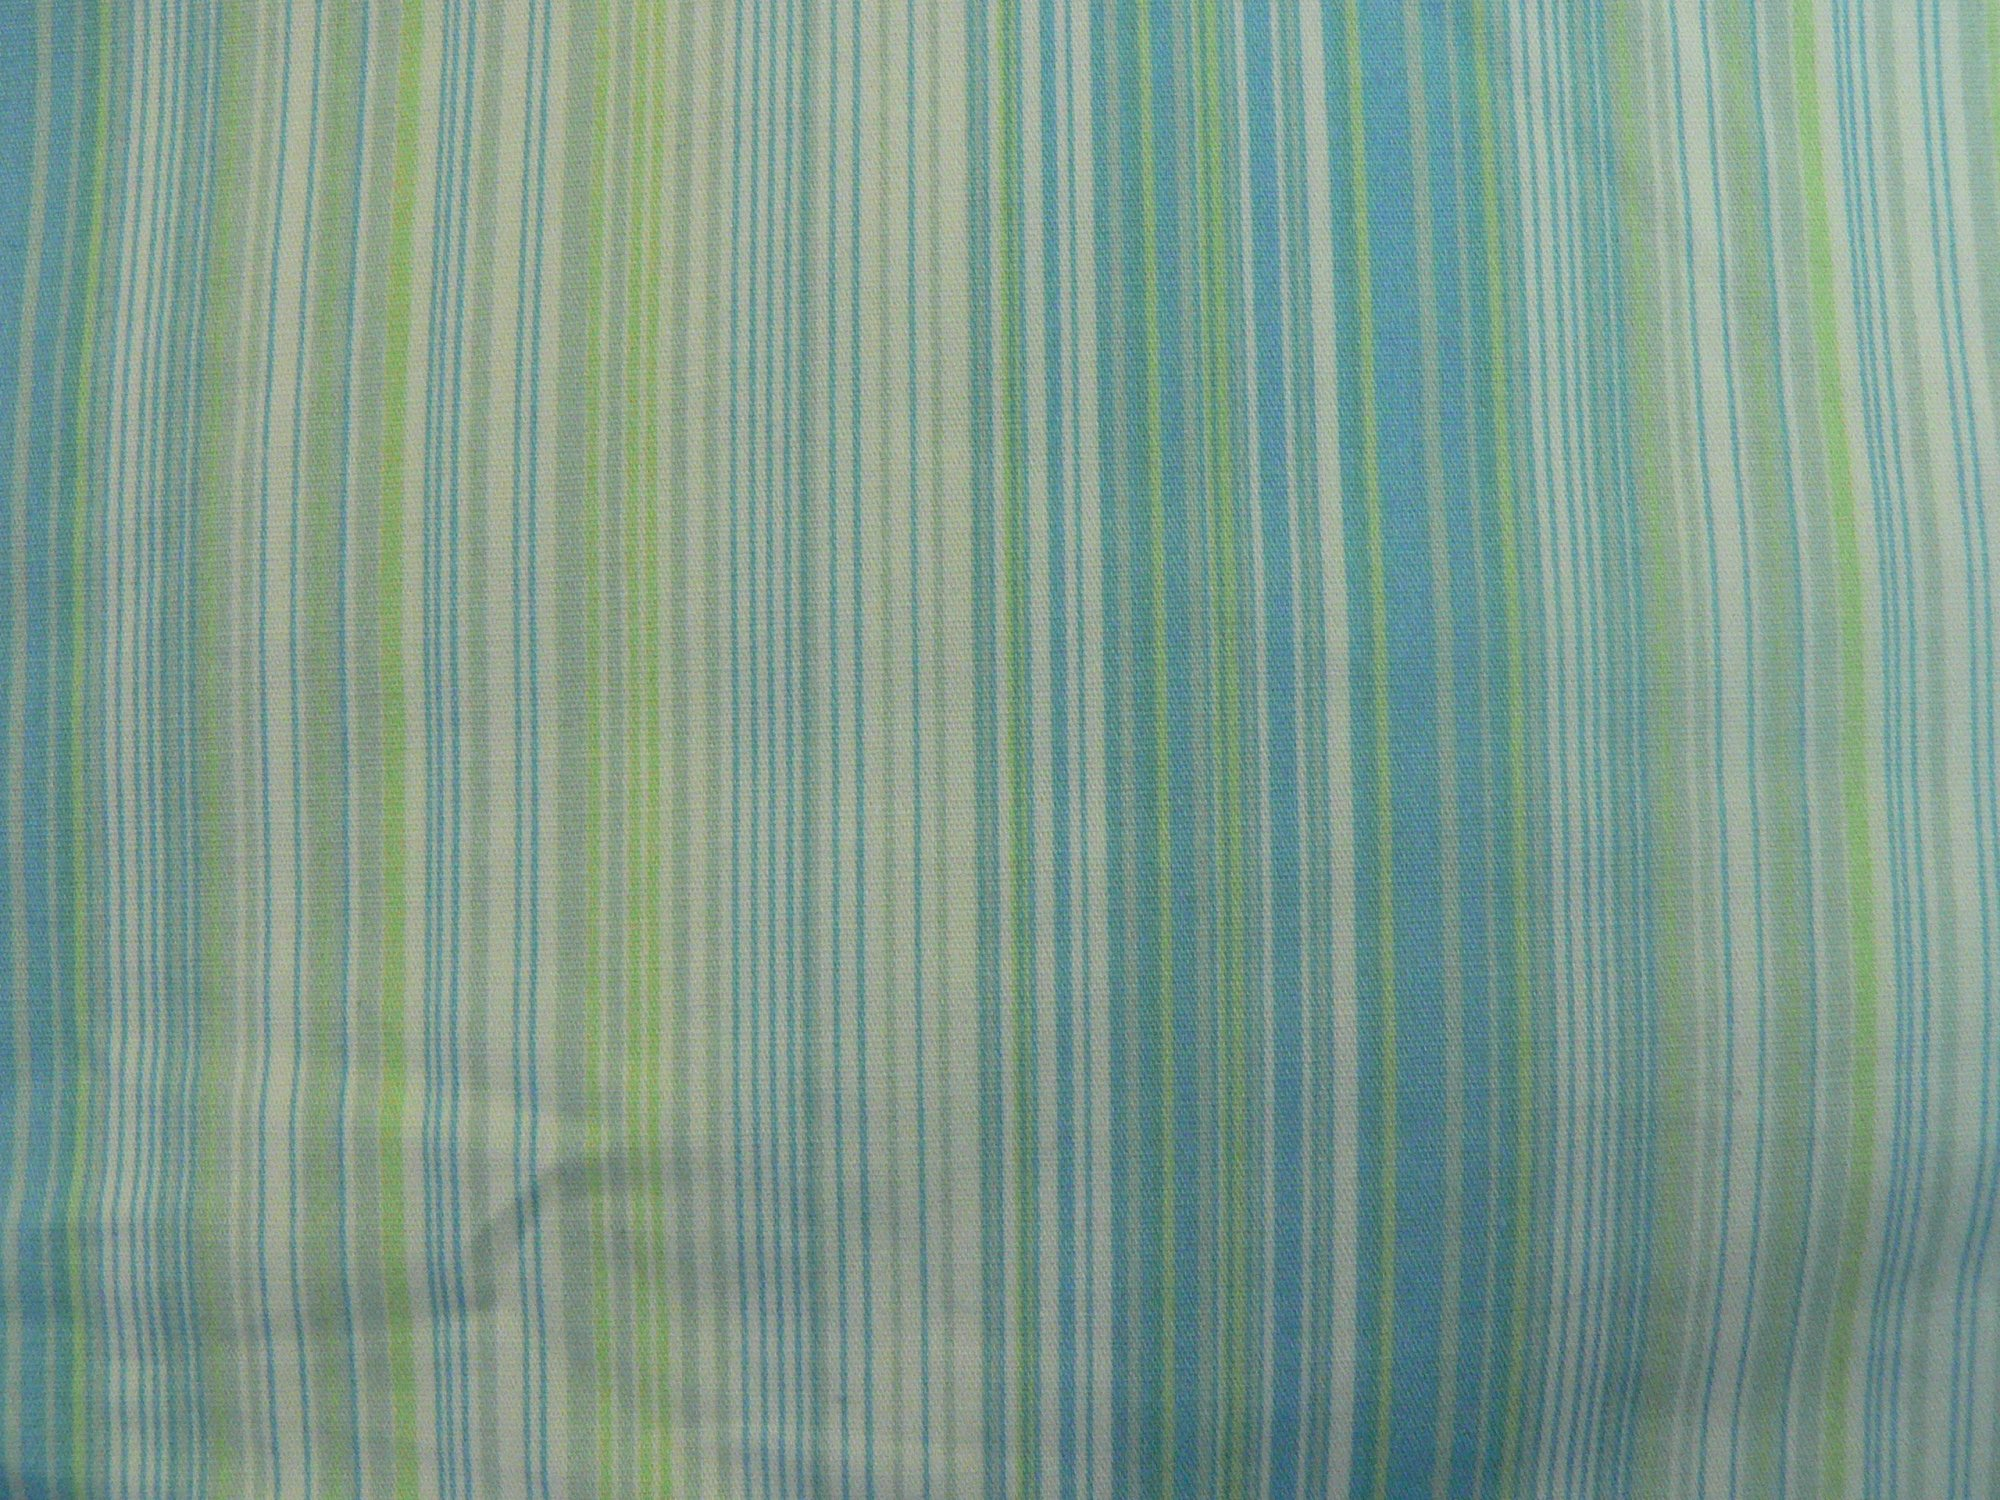 Shirting, white with blue/teal/green fine stripe